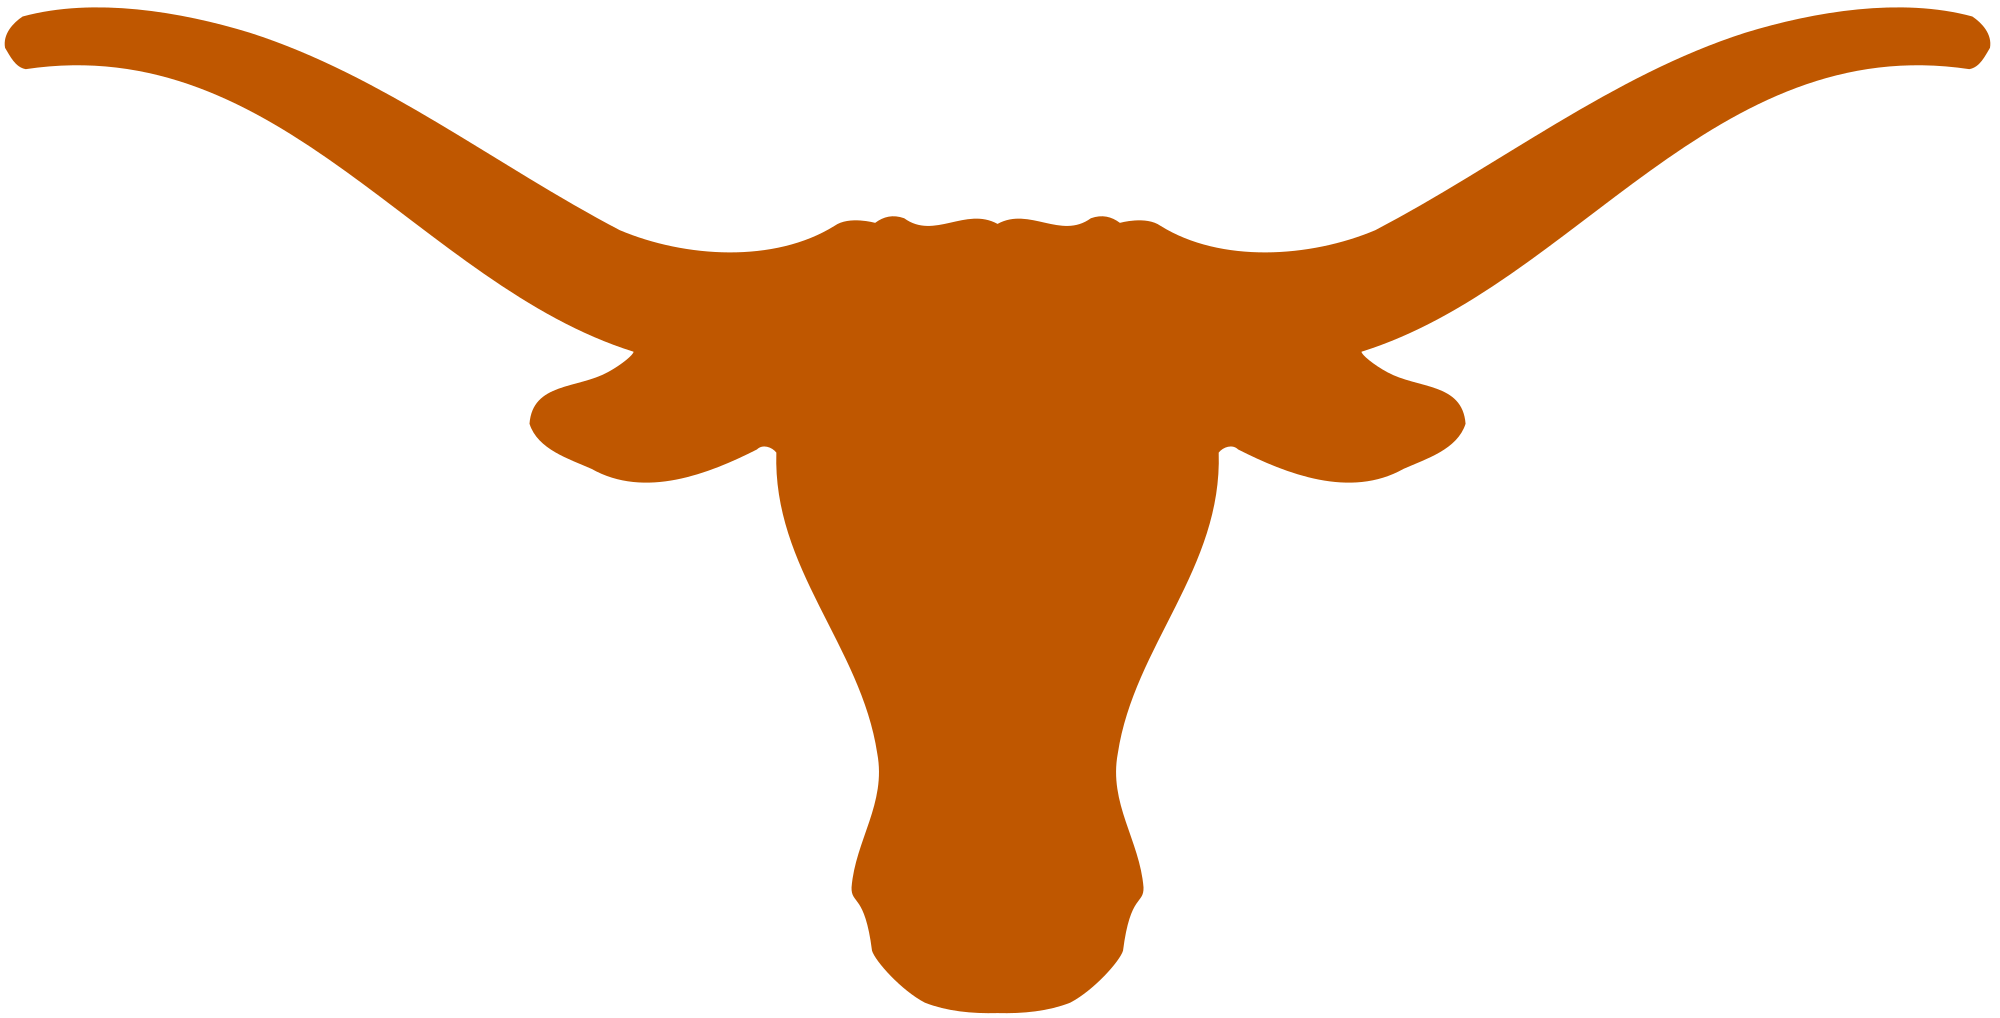 clip art longhorn drawing portrait #99133496